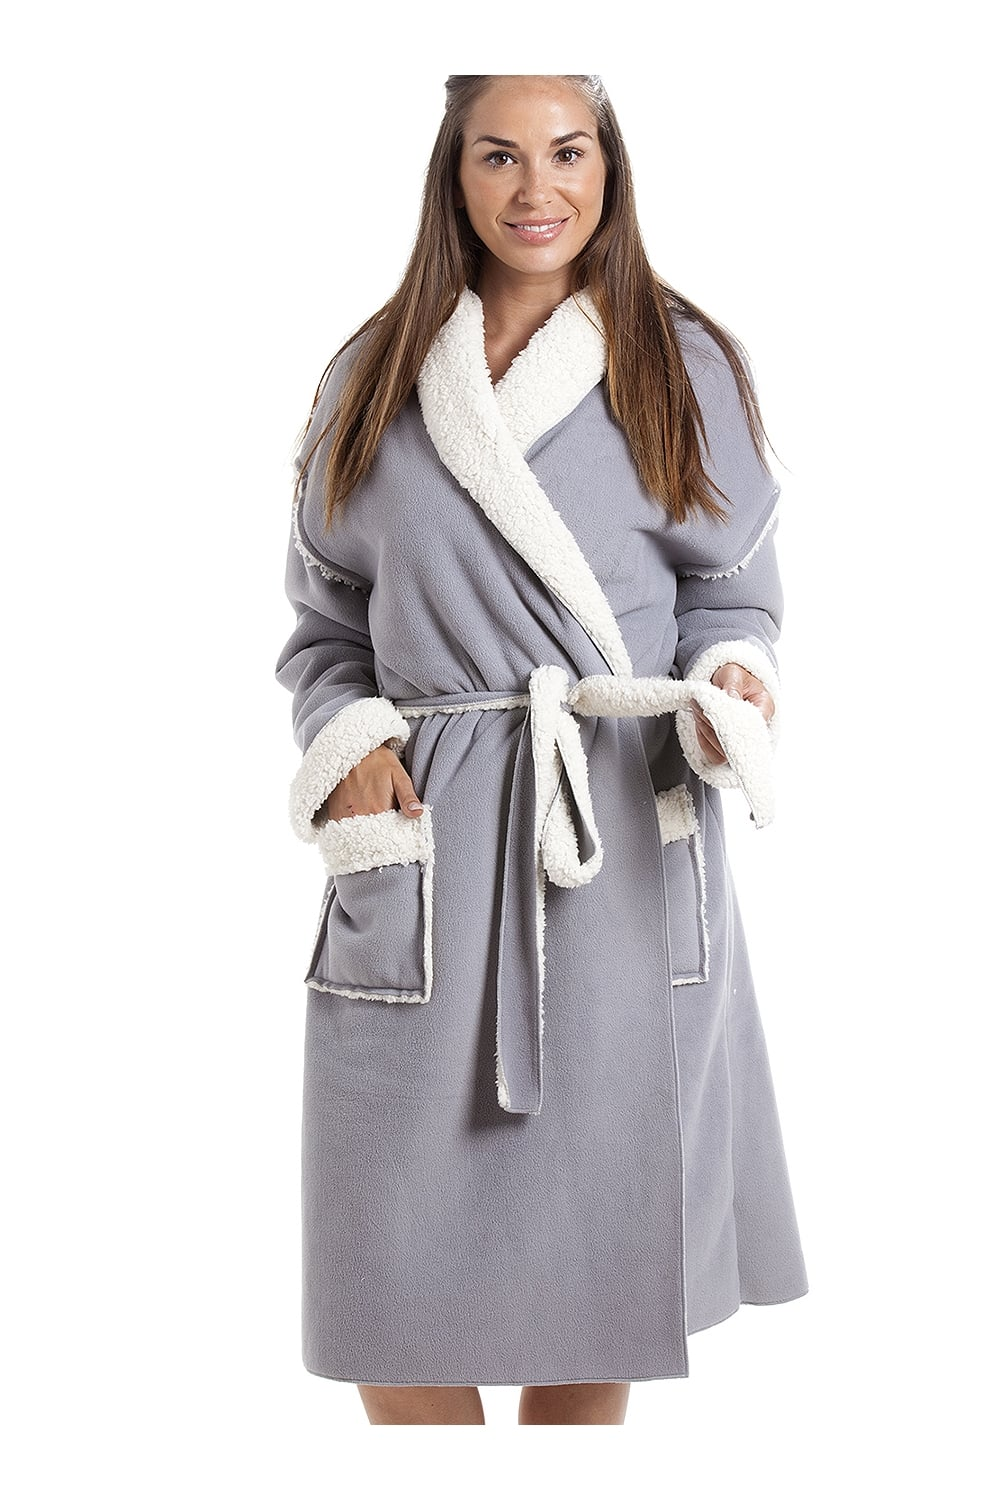 580ba9f8064d1 Camille Womens Grey Stay Soft Bonded Fleece Dressing Gown